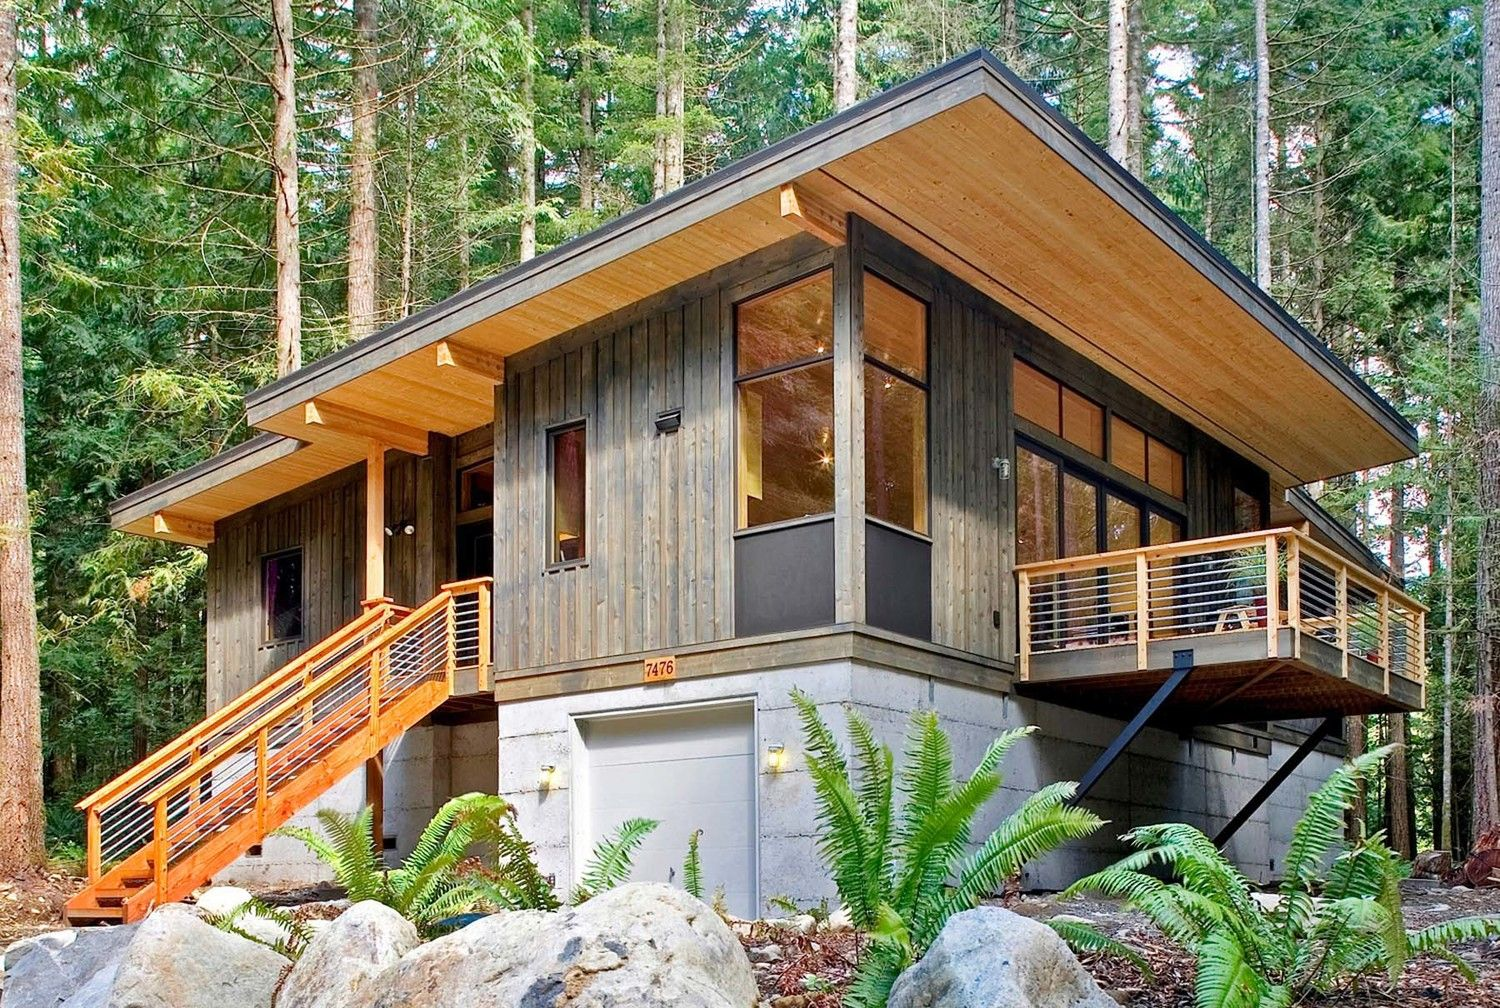 20 of the most beautiful prefab cabin designs - Modern Cabin Design